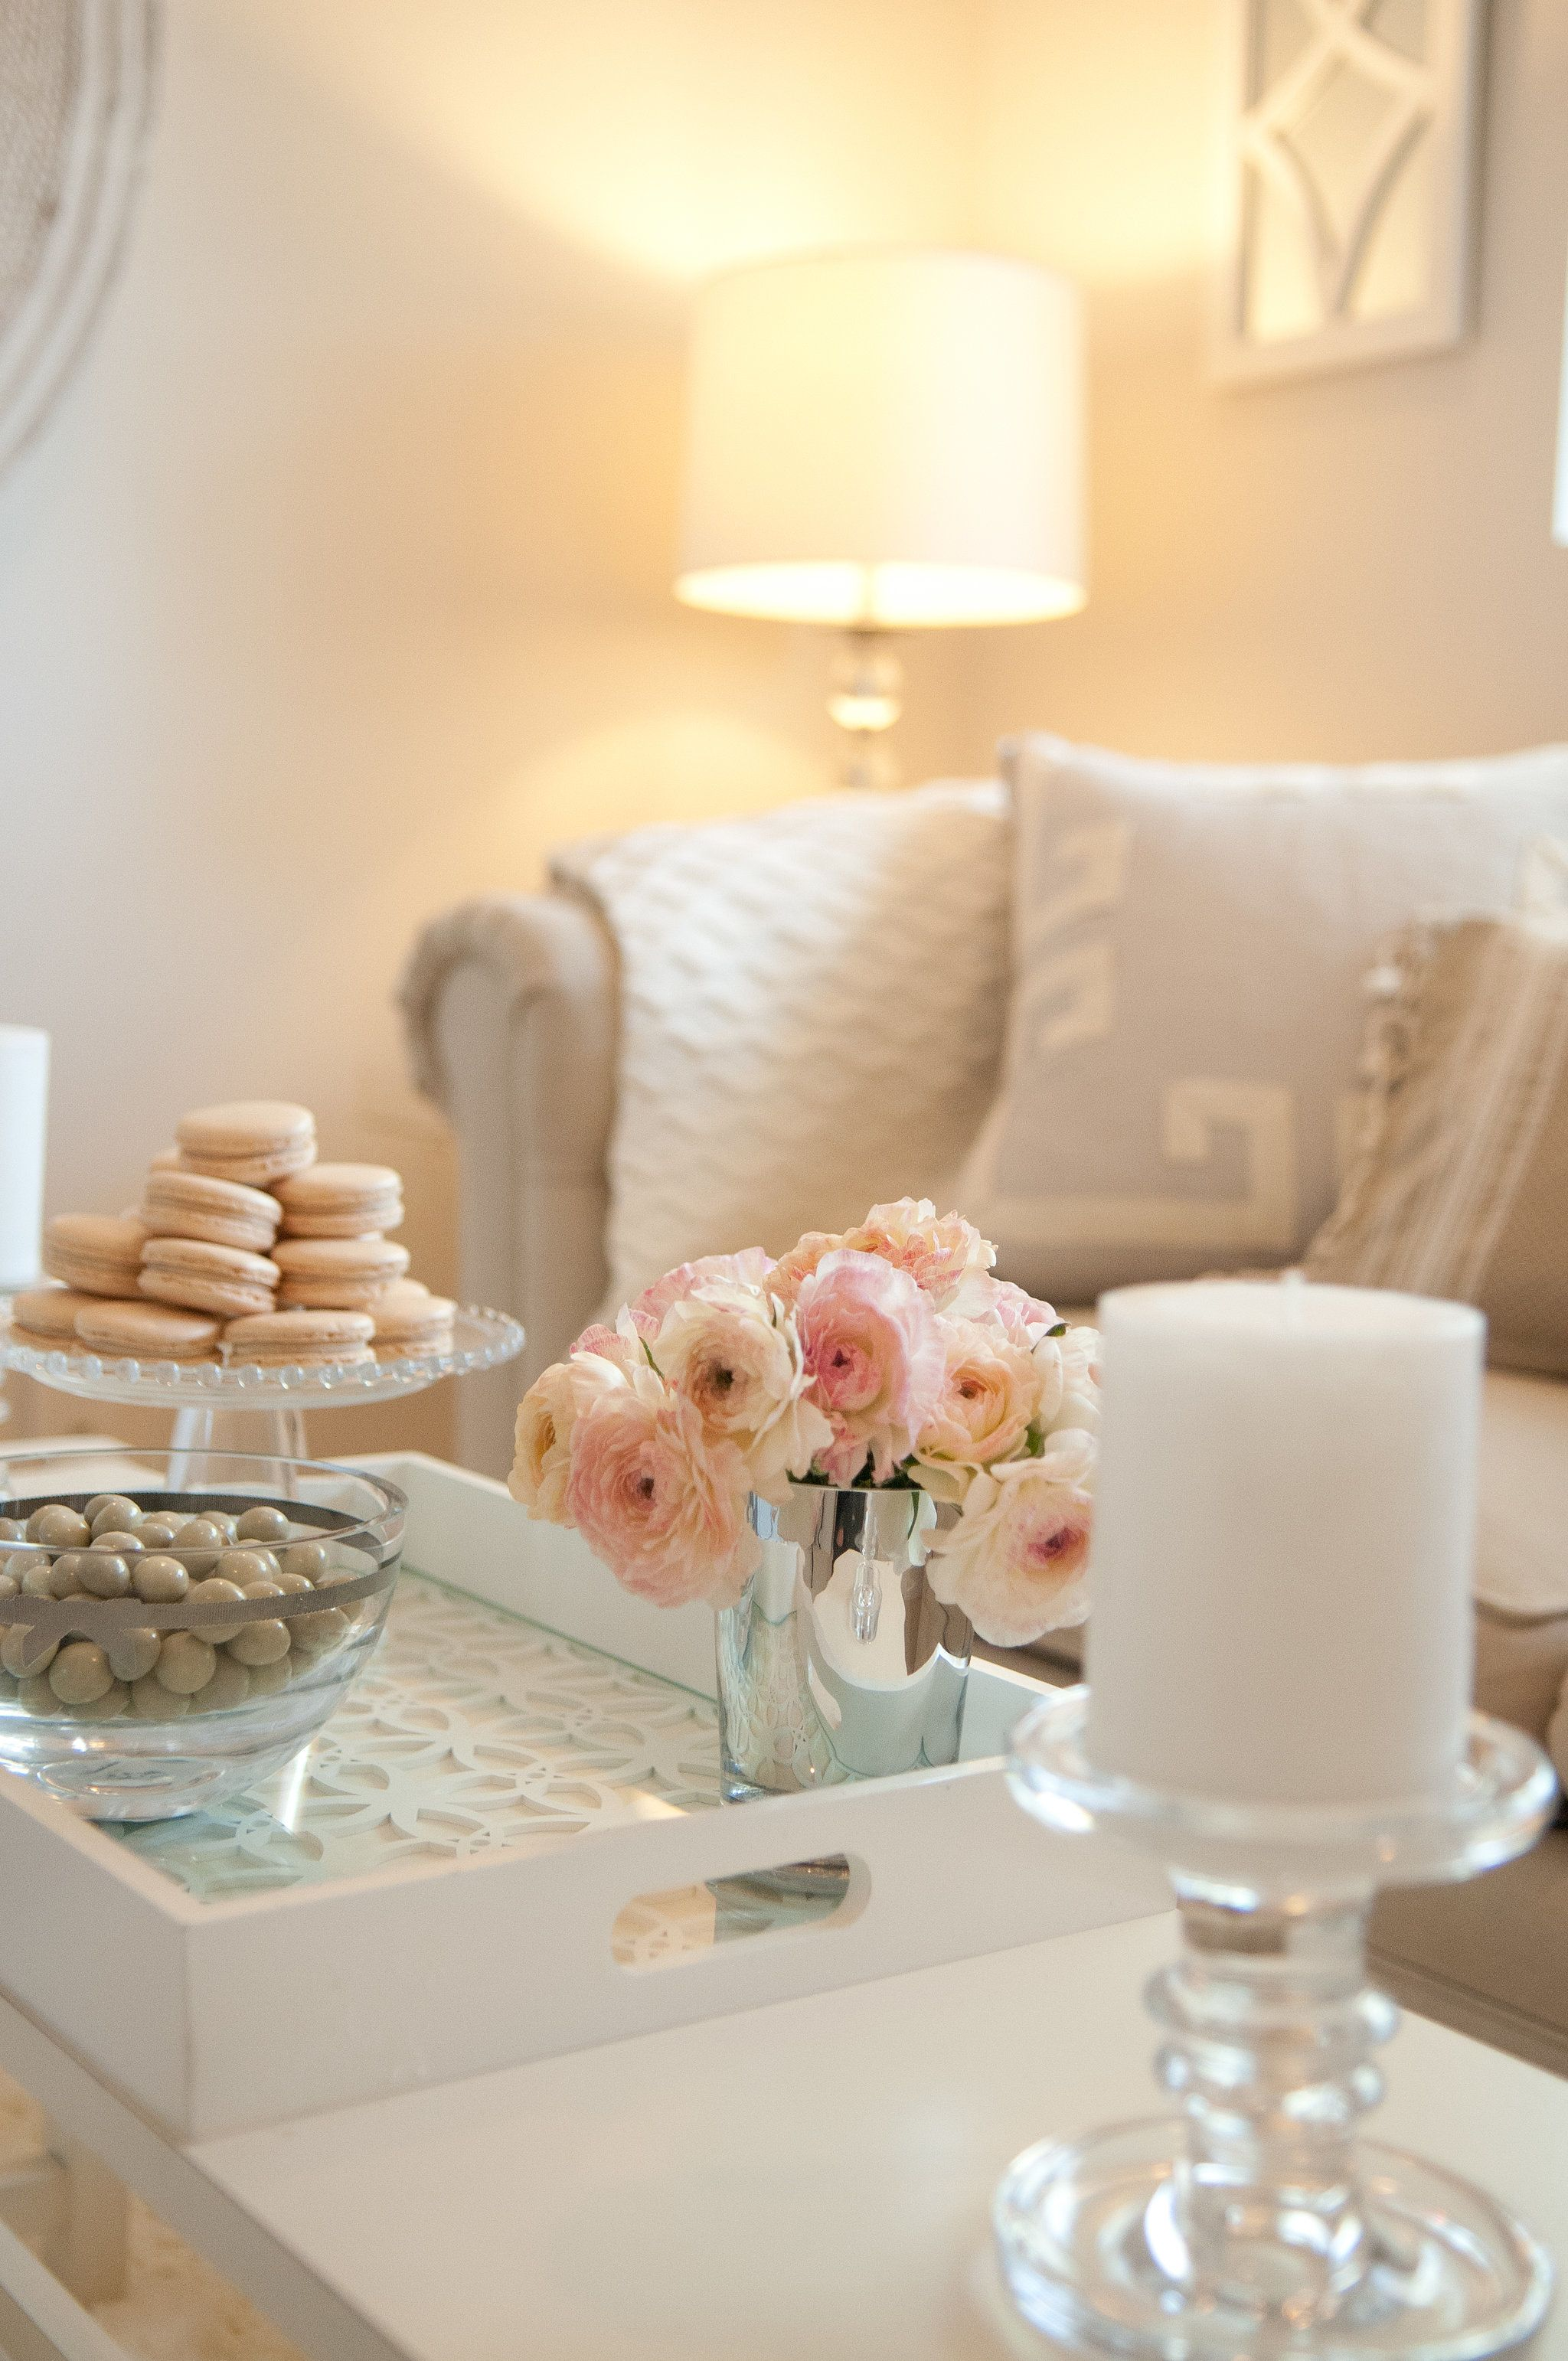 Top 10 Best Coffee Table Decor Ideas Decorating Coffee Tables Romantic Home Decor Cool Coffee Tables